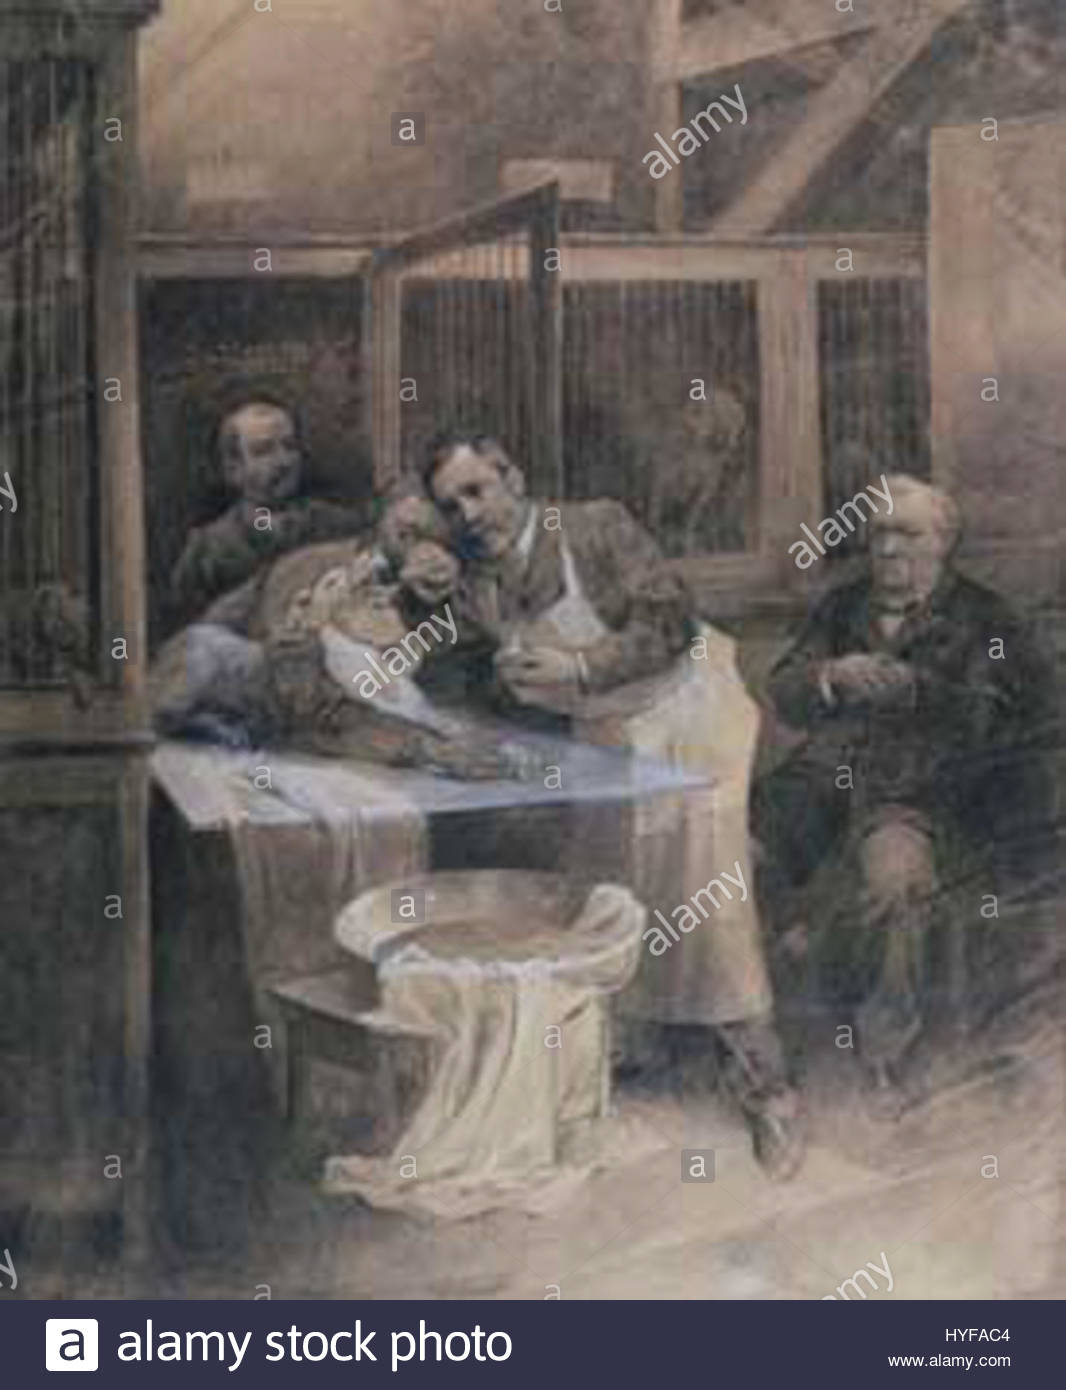 Pasteur and rabid dog by Alfons Mucha - Stock Image